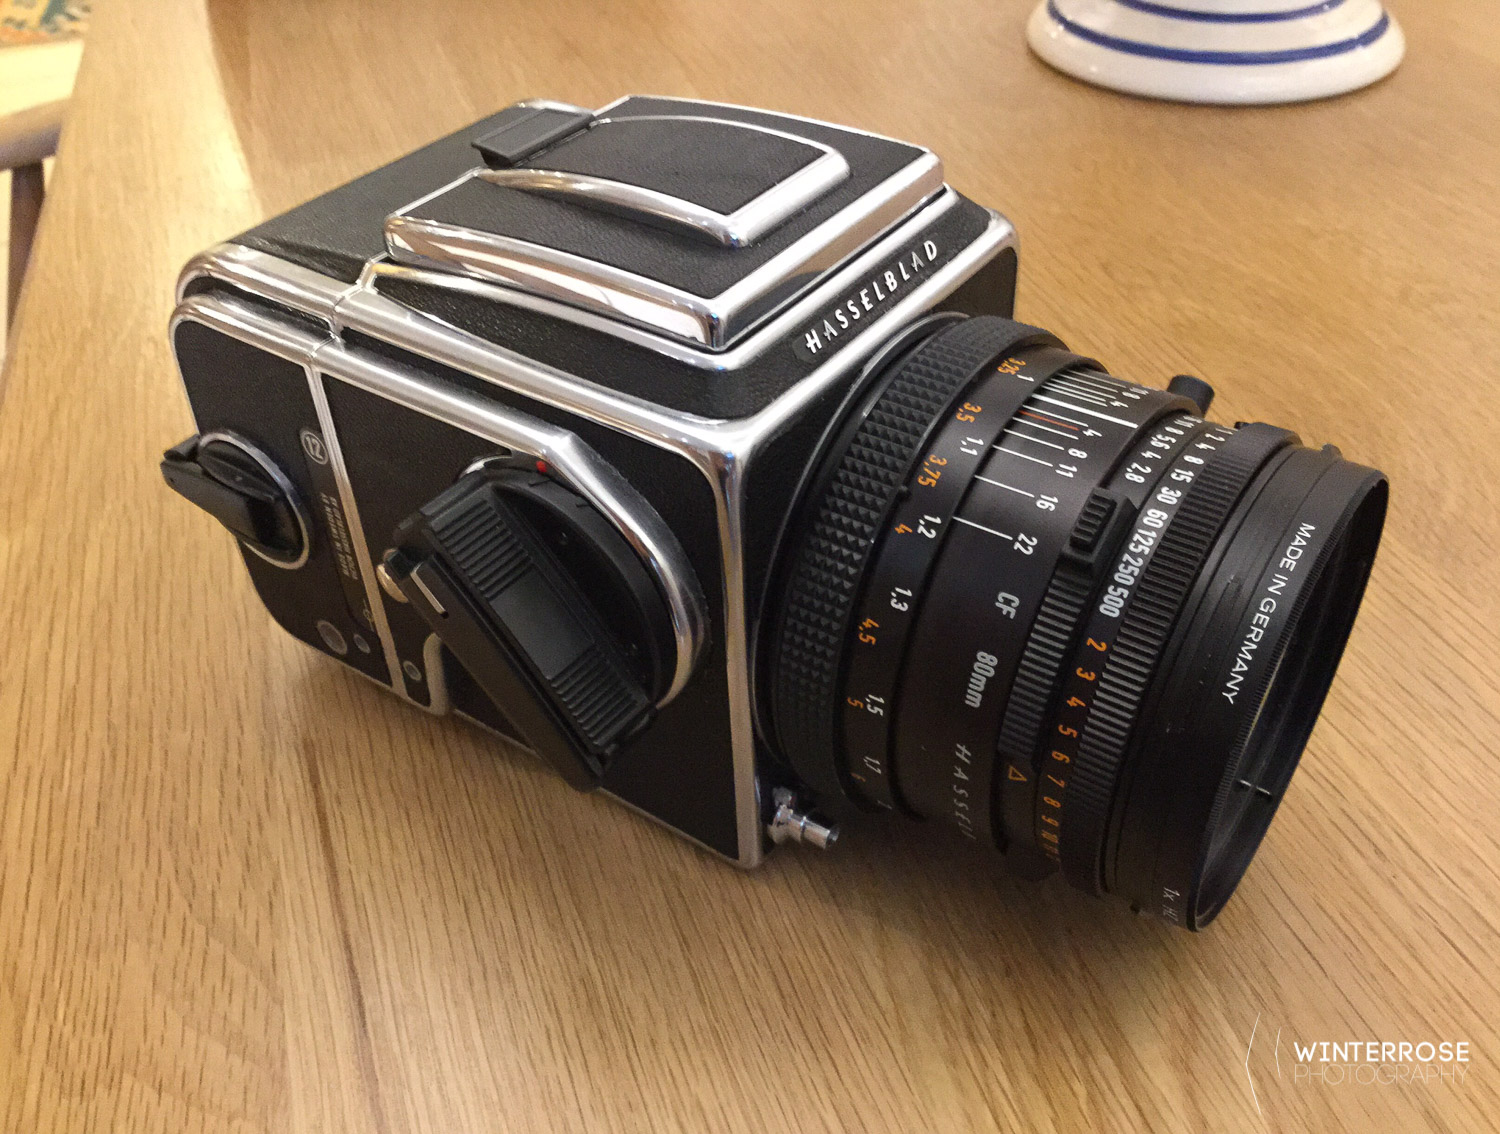 The Hasselblad 500CM and 80mm F2.8